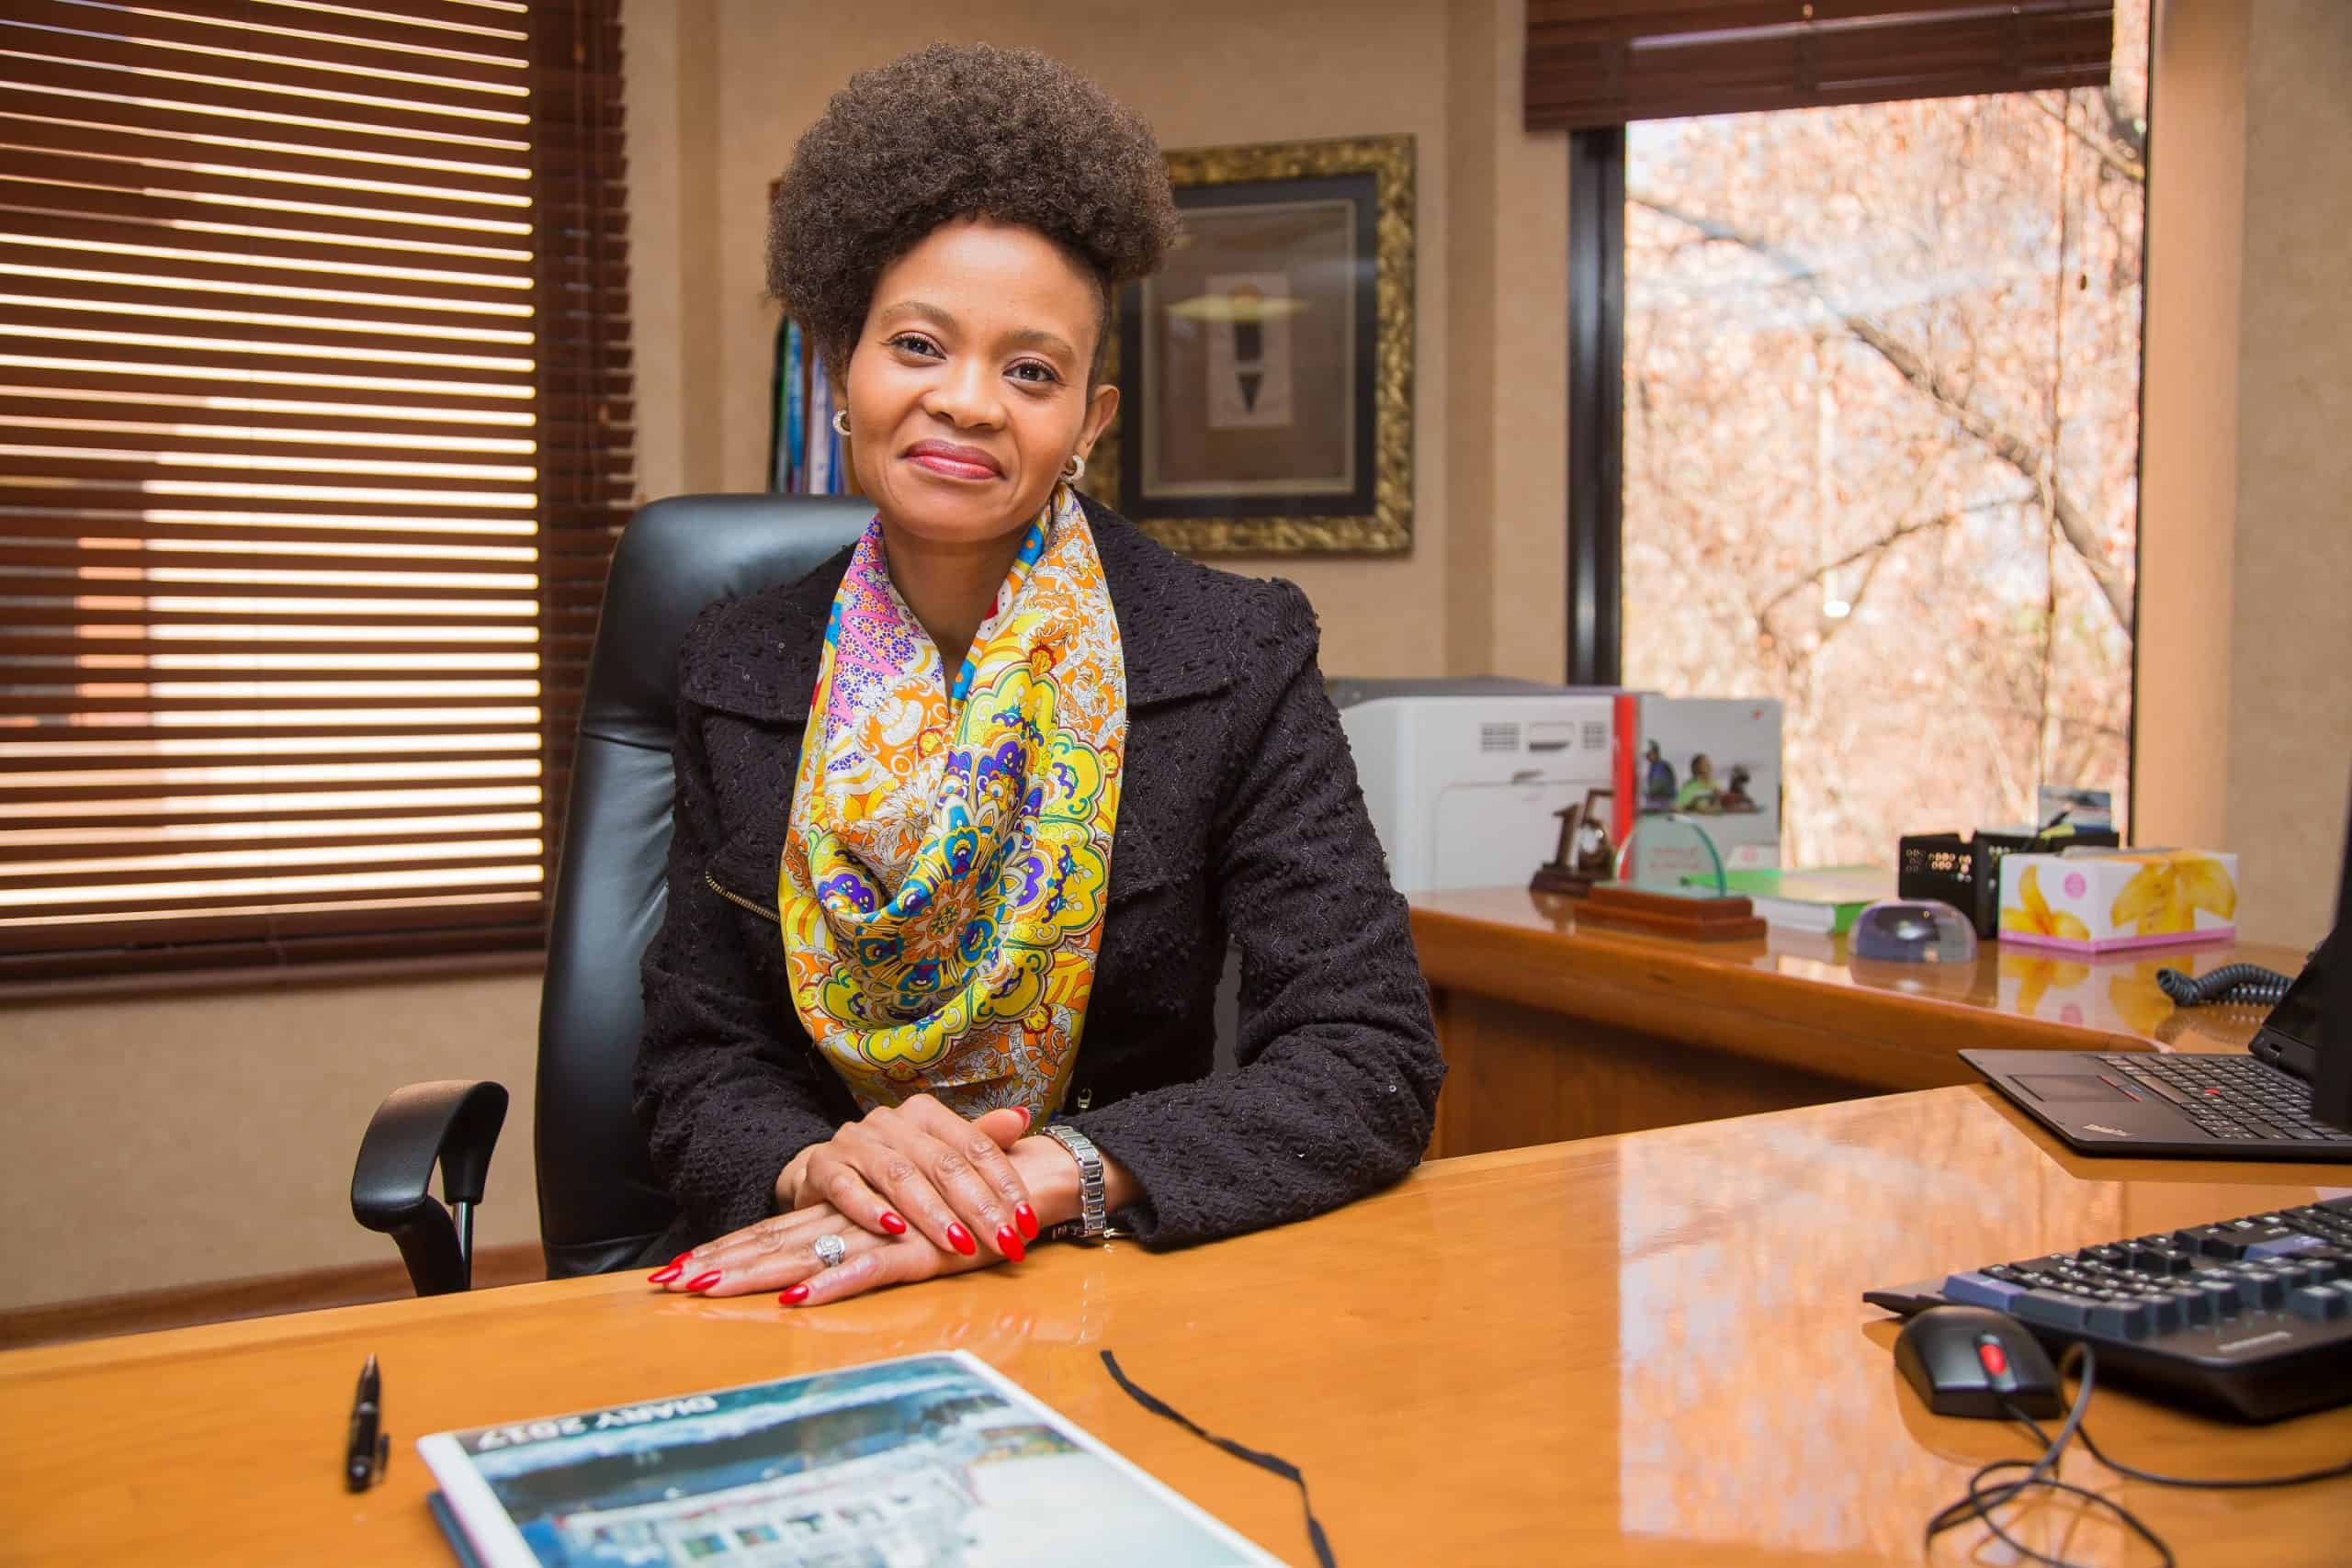 Transnet National Ports Authority appoints first female chief executive